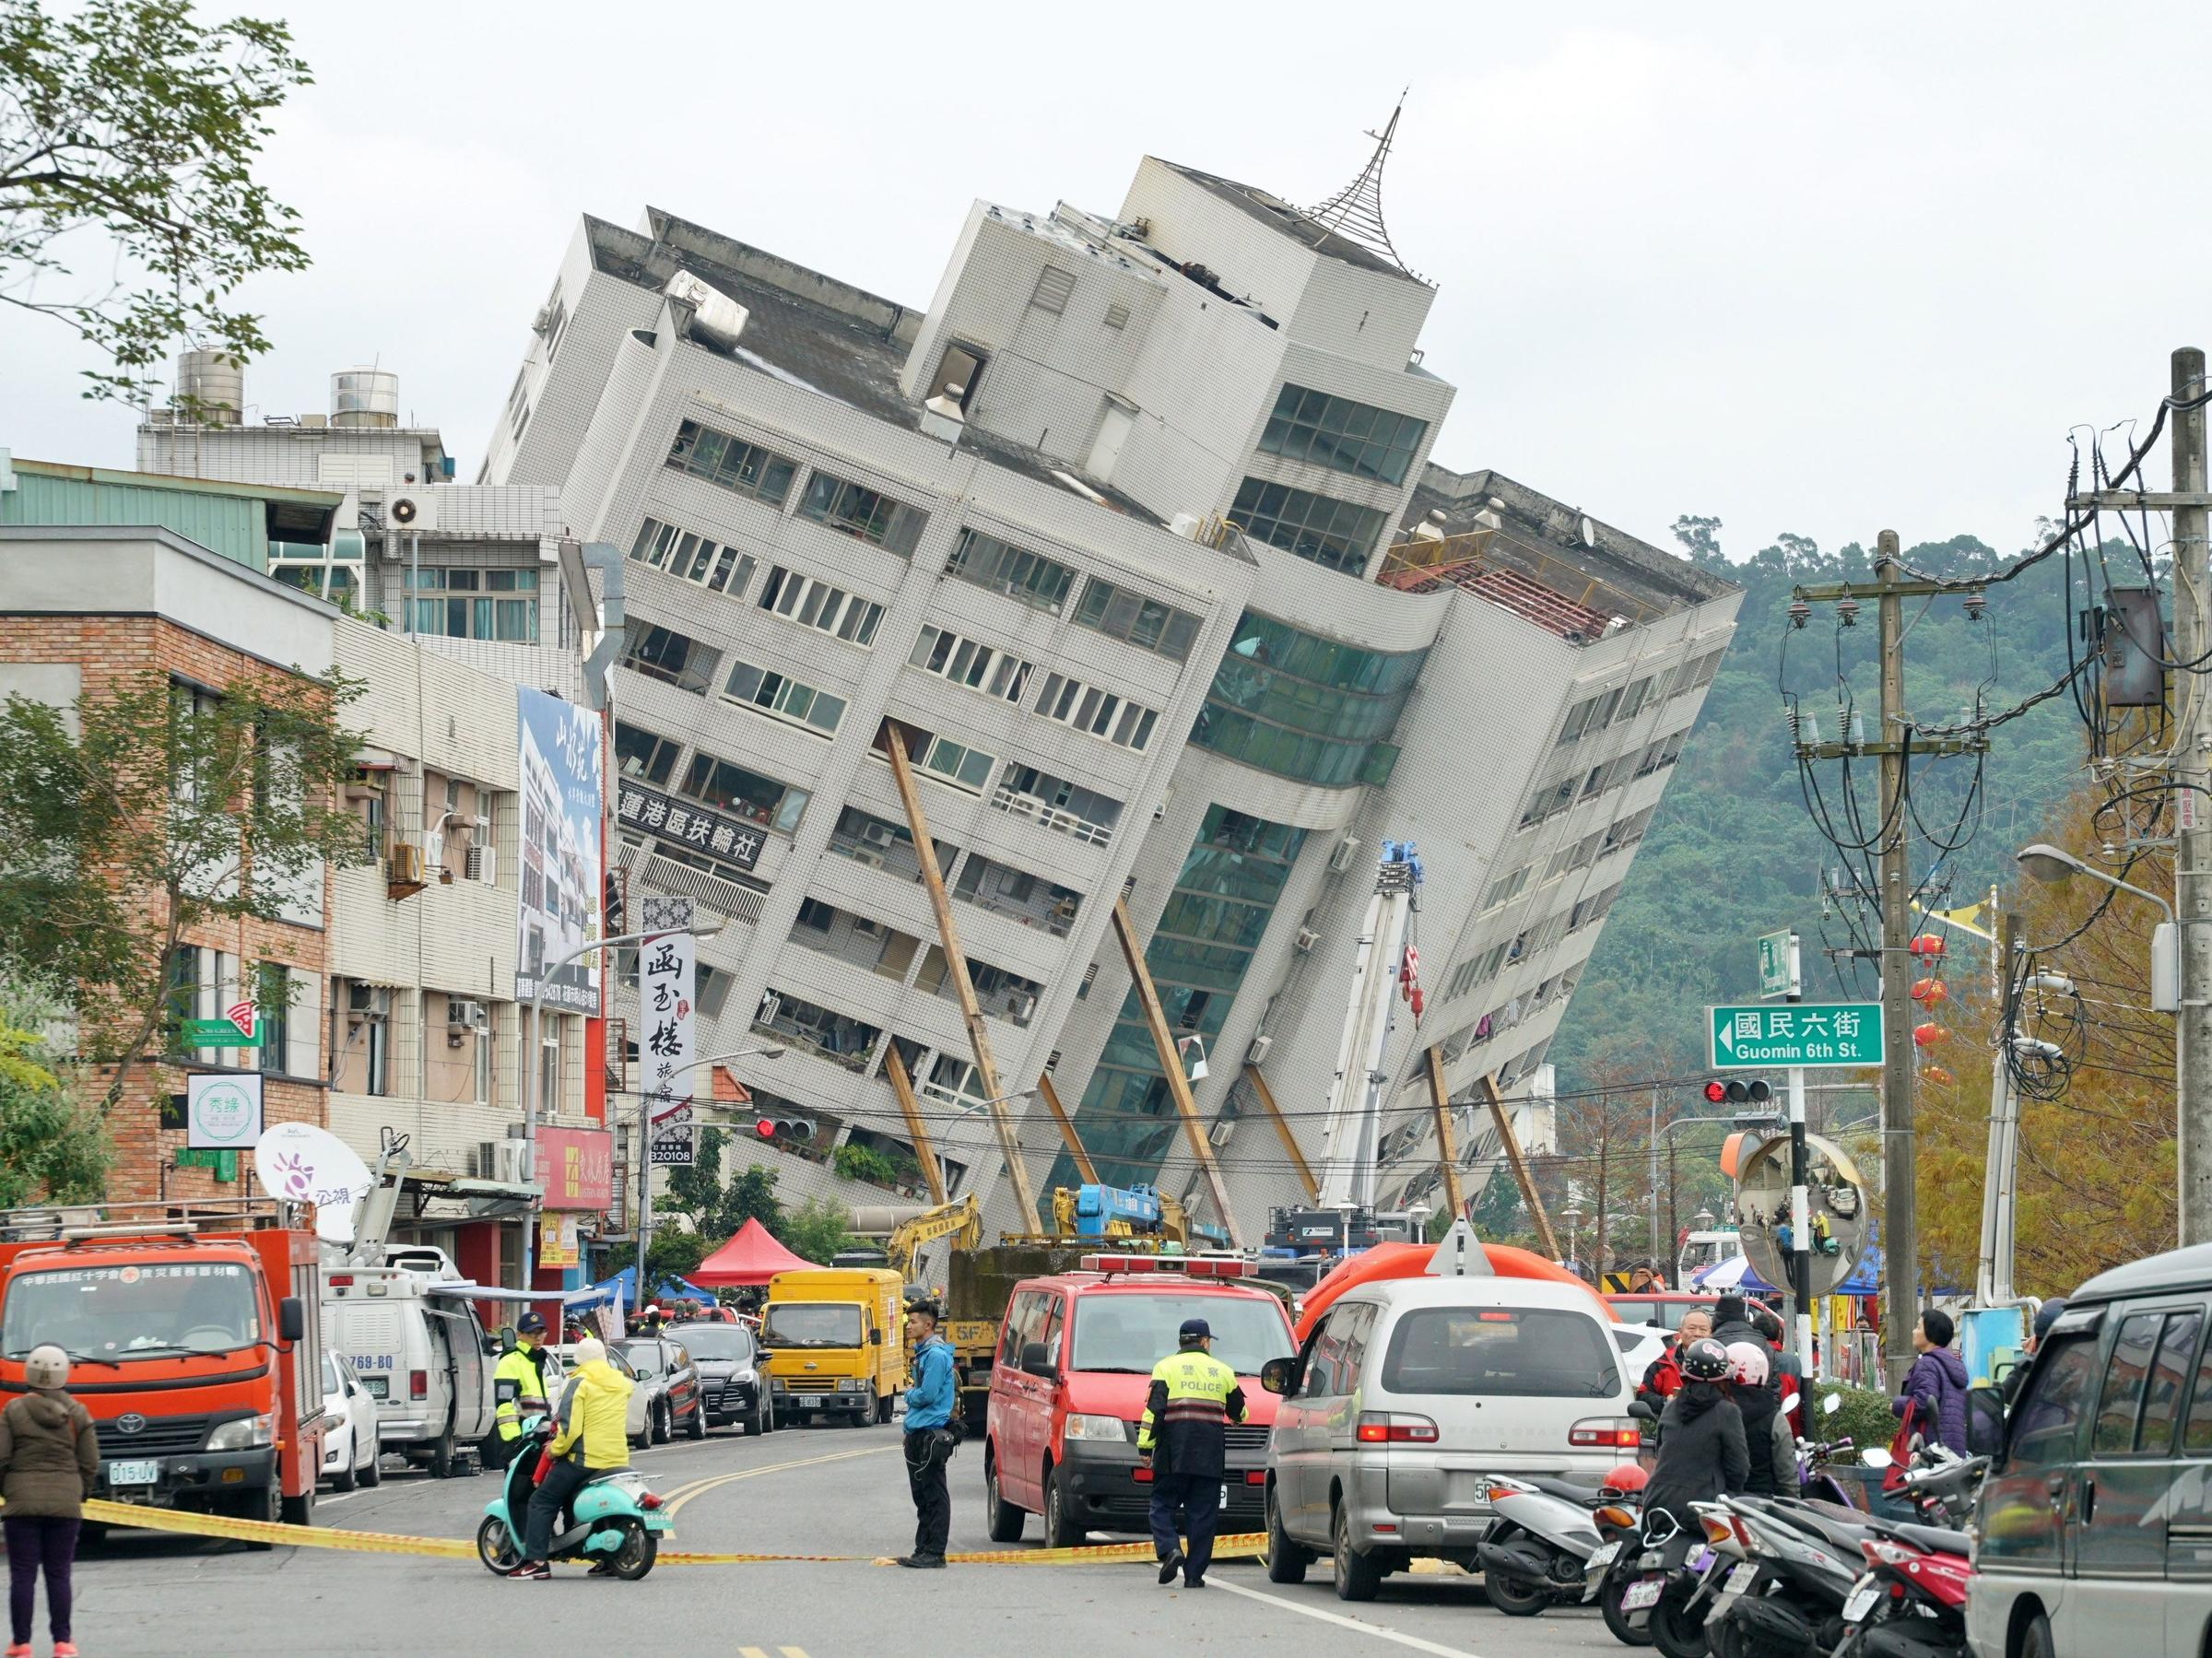 People believed trapped under toppled hotel after 6.4 magnitude quake shakes Taiwan